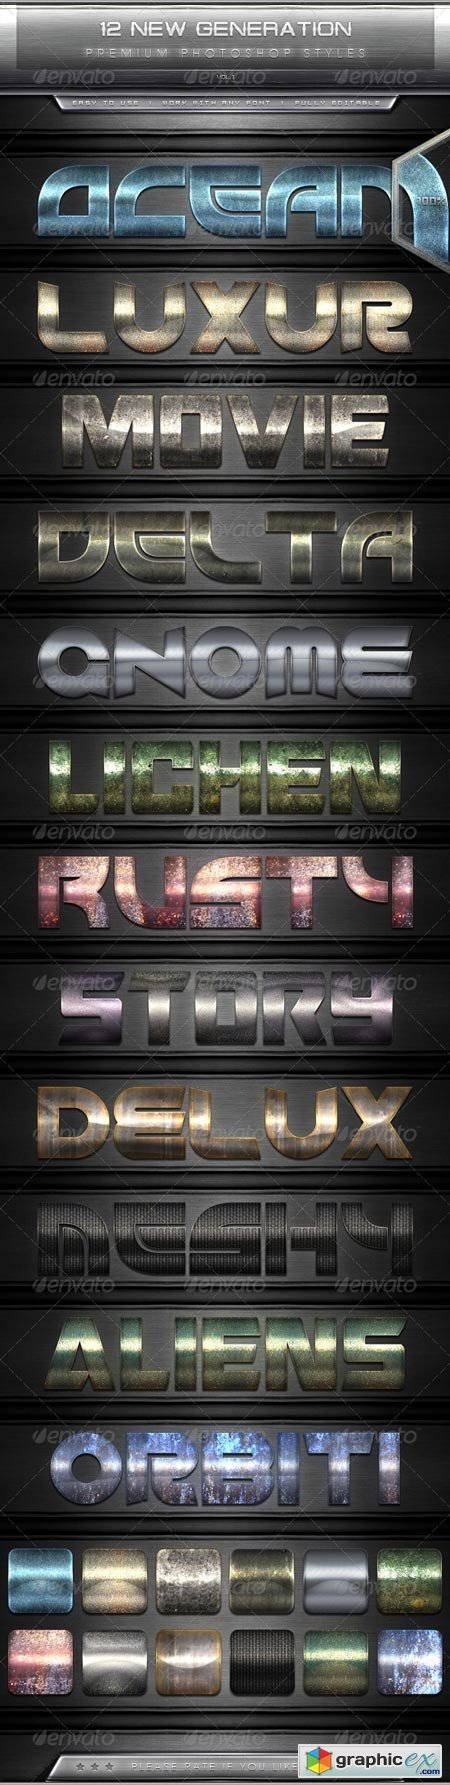 12 New Generation Text Effect Styles Vol.1 7630718